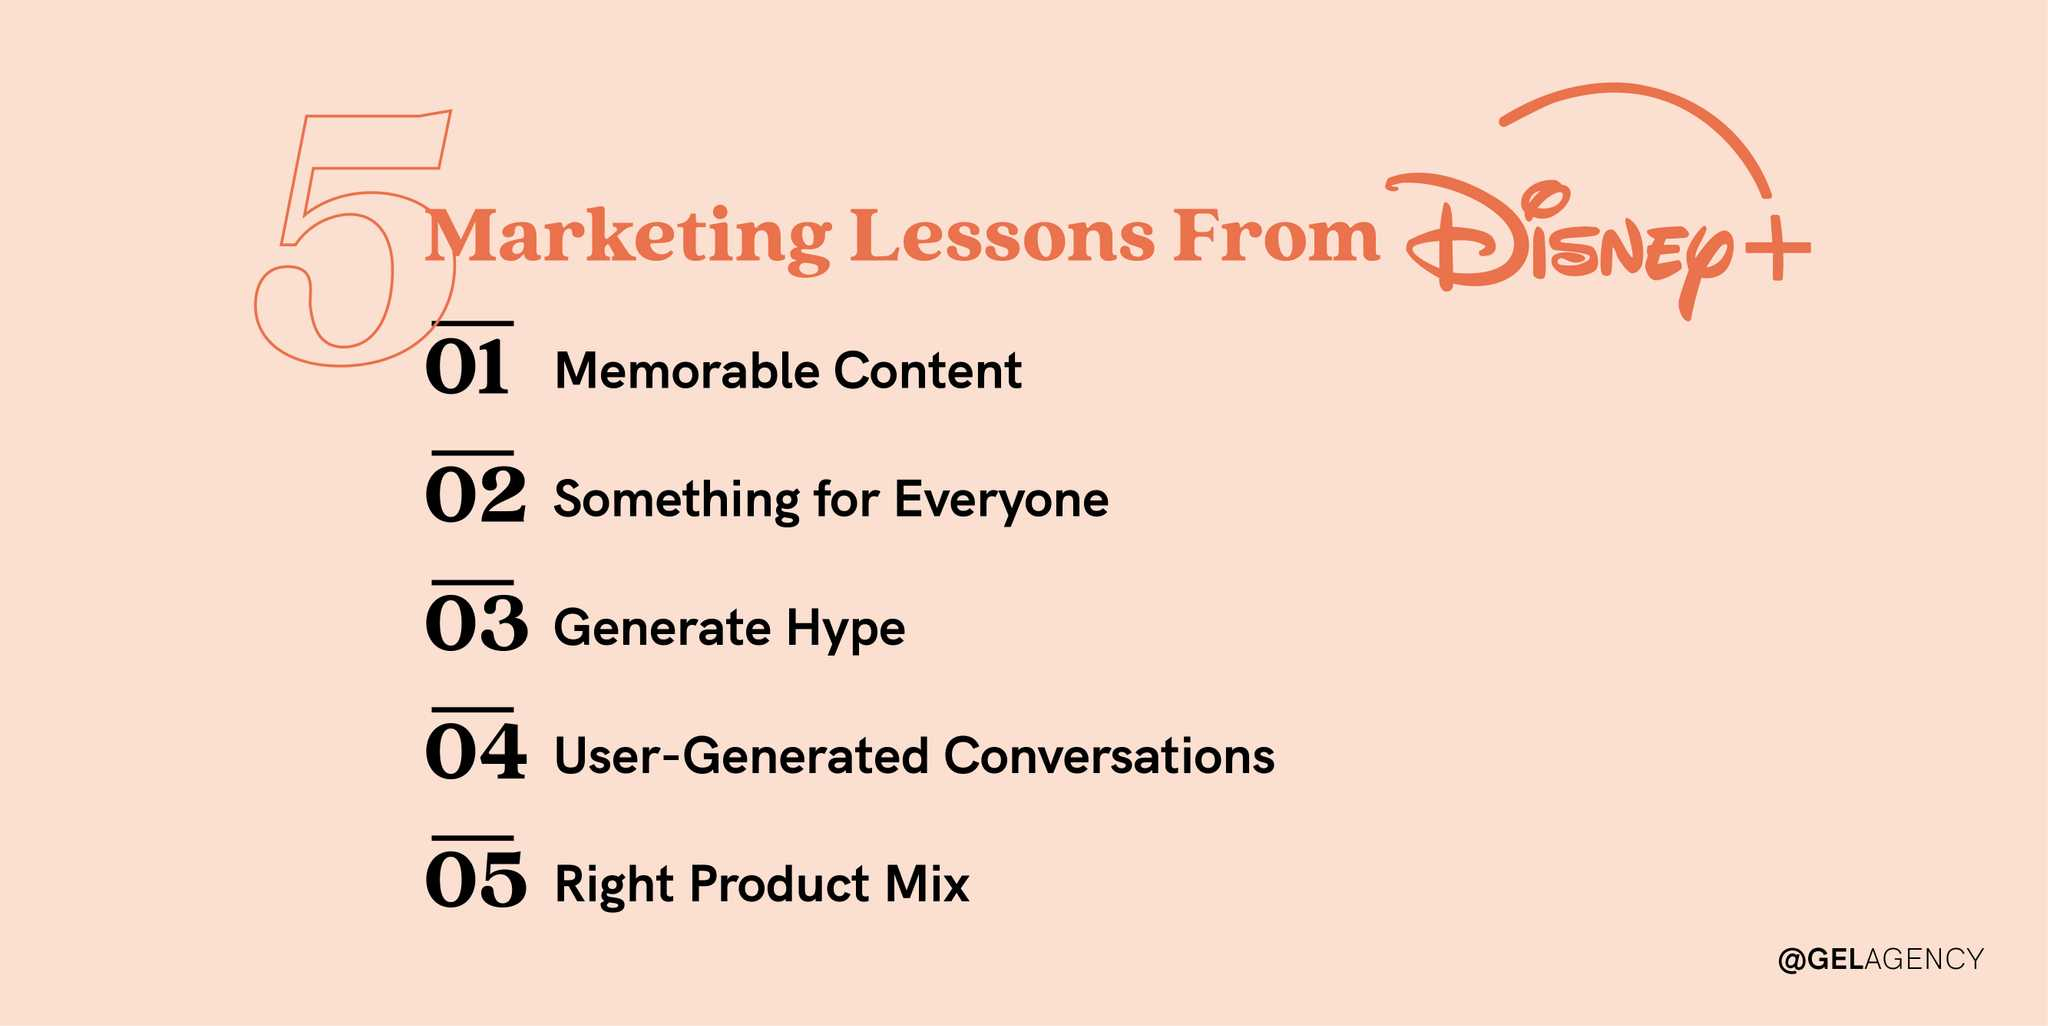 5 Marketing Lessons From Disney+